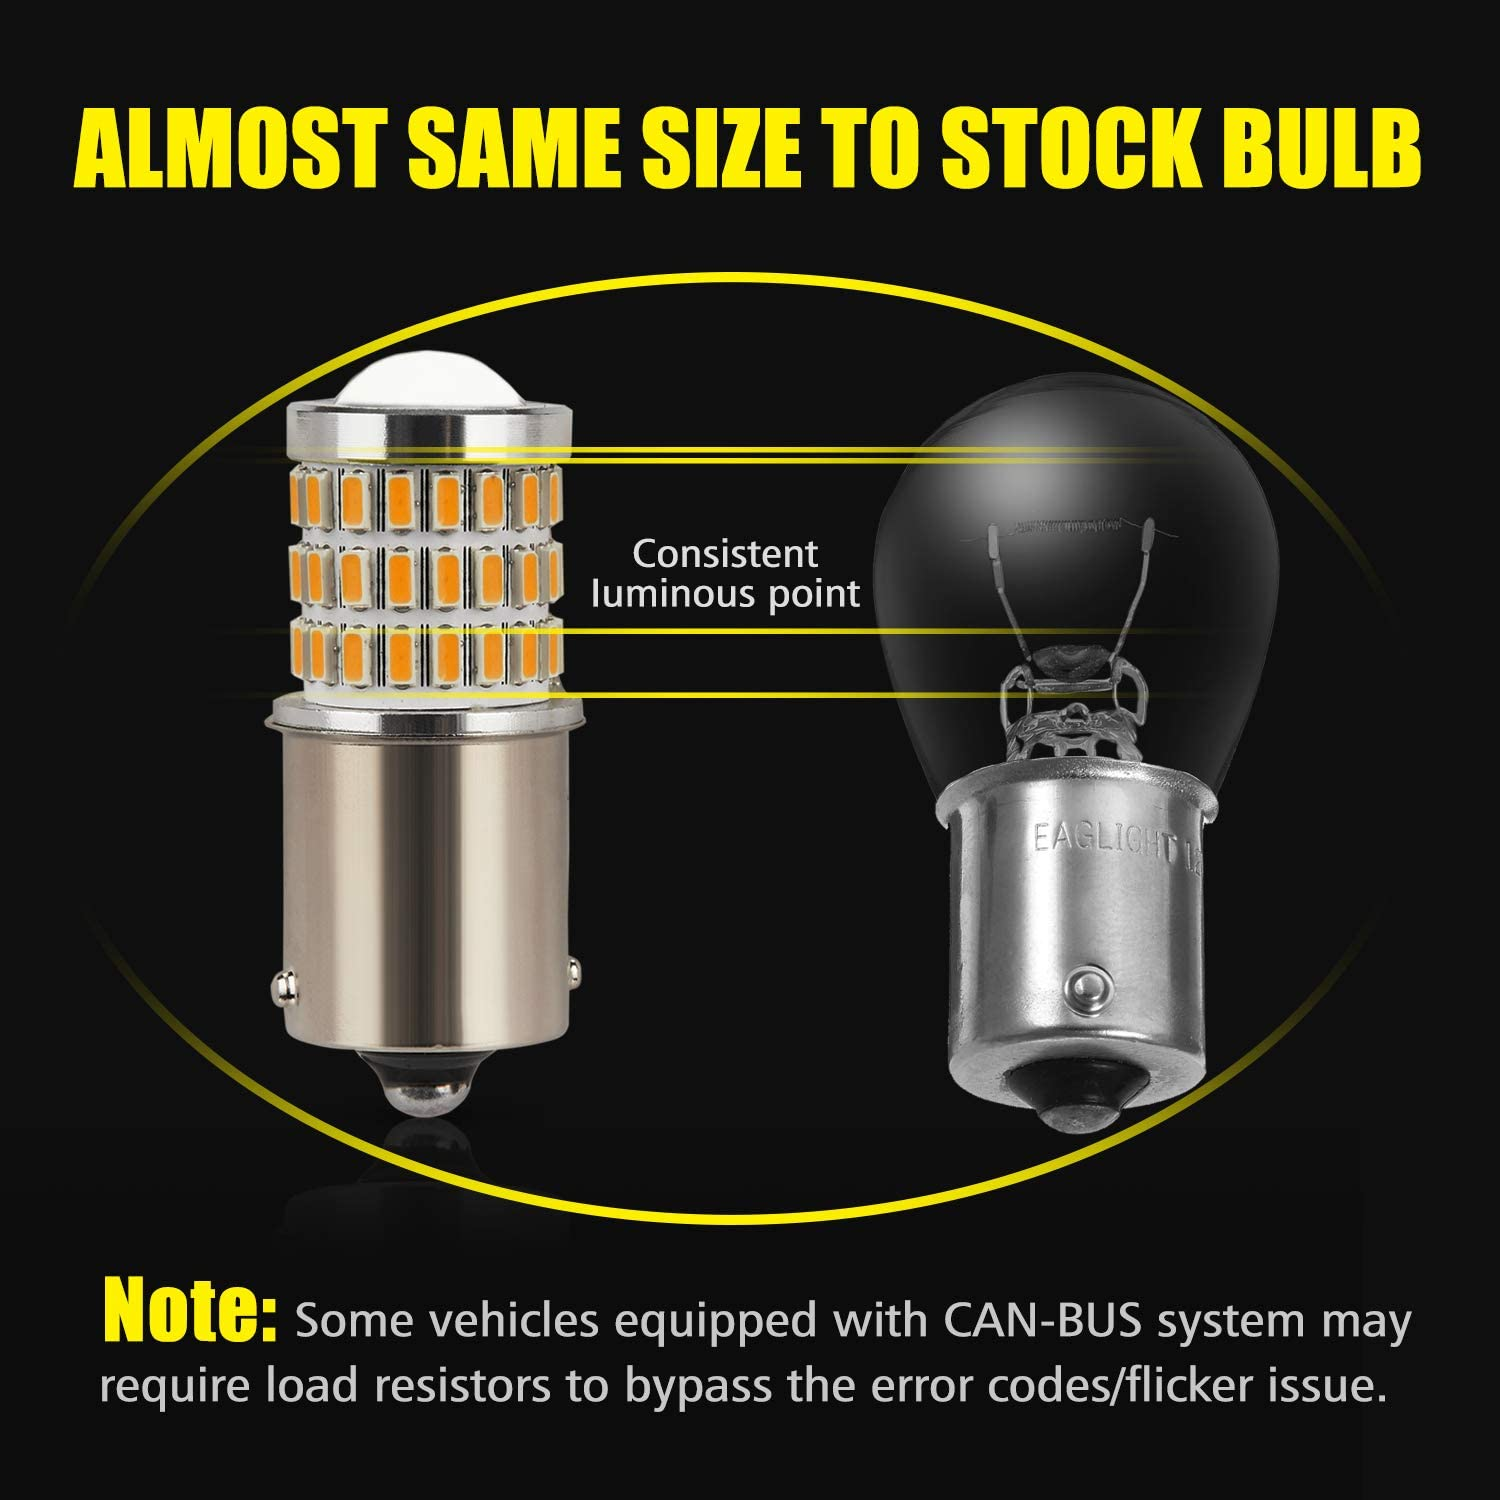 Turn Signal//Parking or Running Lights Ultra Bright 57-SMD LED Replacement for Blinker Lights Brake//Tail Lights AUXLIGHT 1156 BA15S 1003 1141 7506 1156A LED Bulbs Amber Yellow Pack of 2